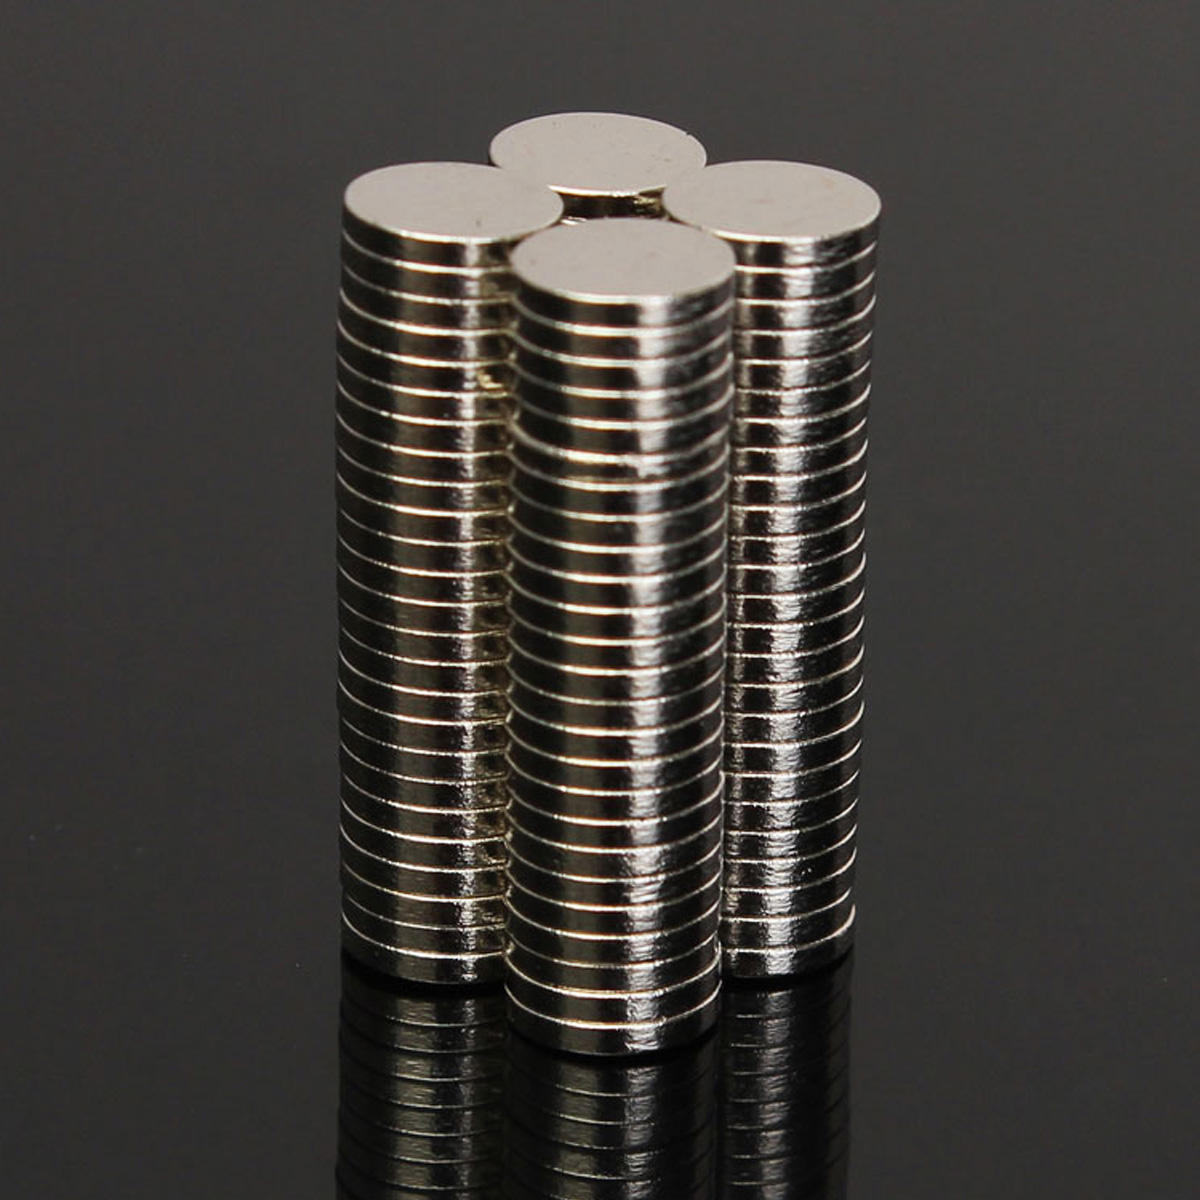 10pcs N52 30mmx3mm Strong Round Disc Magnets Rare Earth Neodymium Magnets - 2